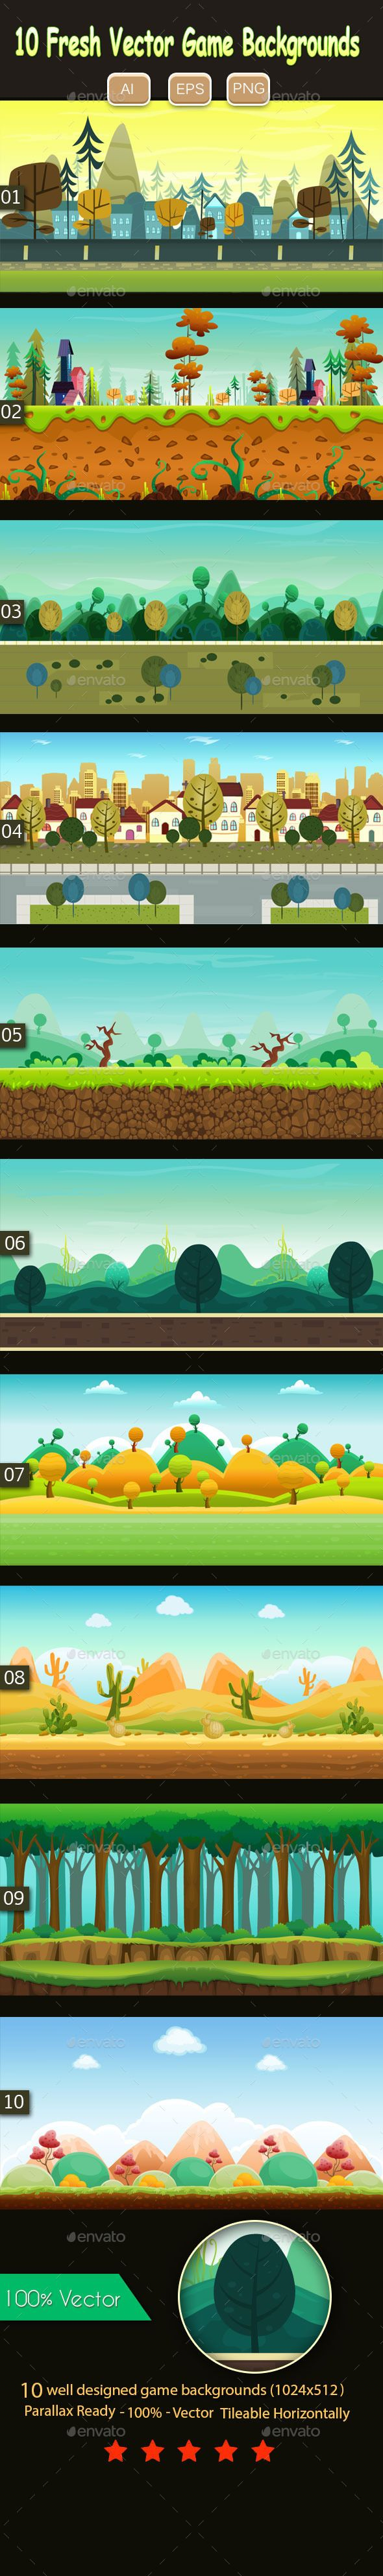 10 Fresh Vector Game Backgrounds — Vector EPS #modern #underwater • Download here → https://graphicriver.net/item/10-fresh-vector-game-backgrounds/9709809?ref=pxcr